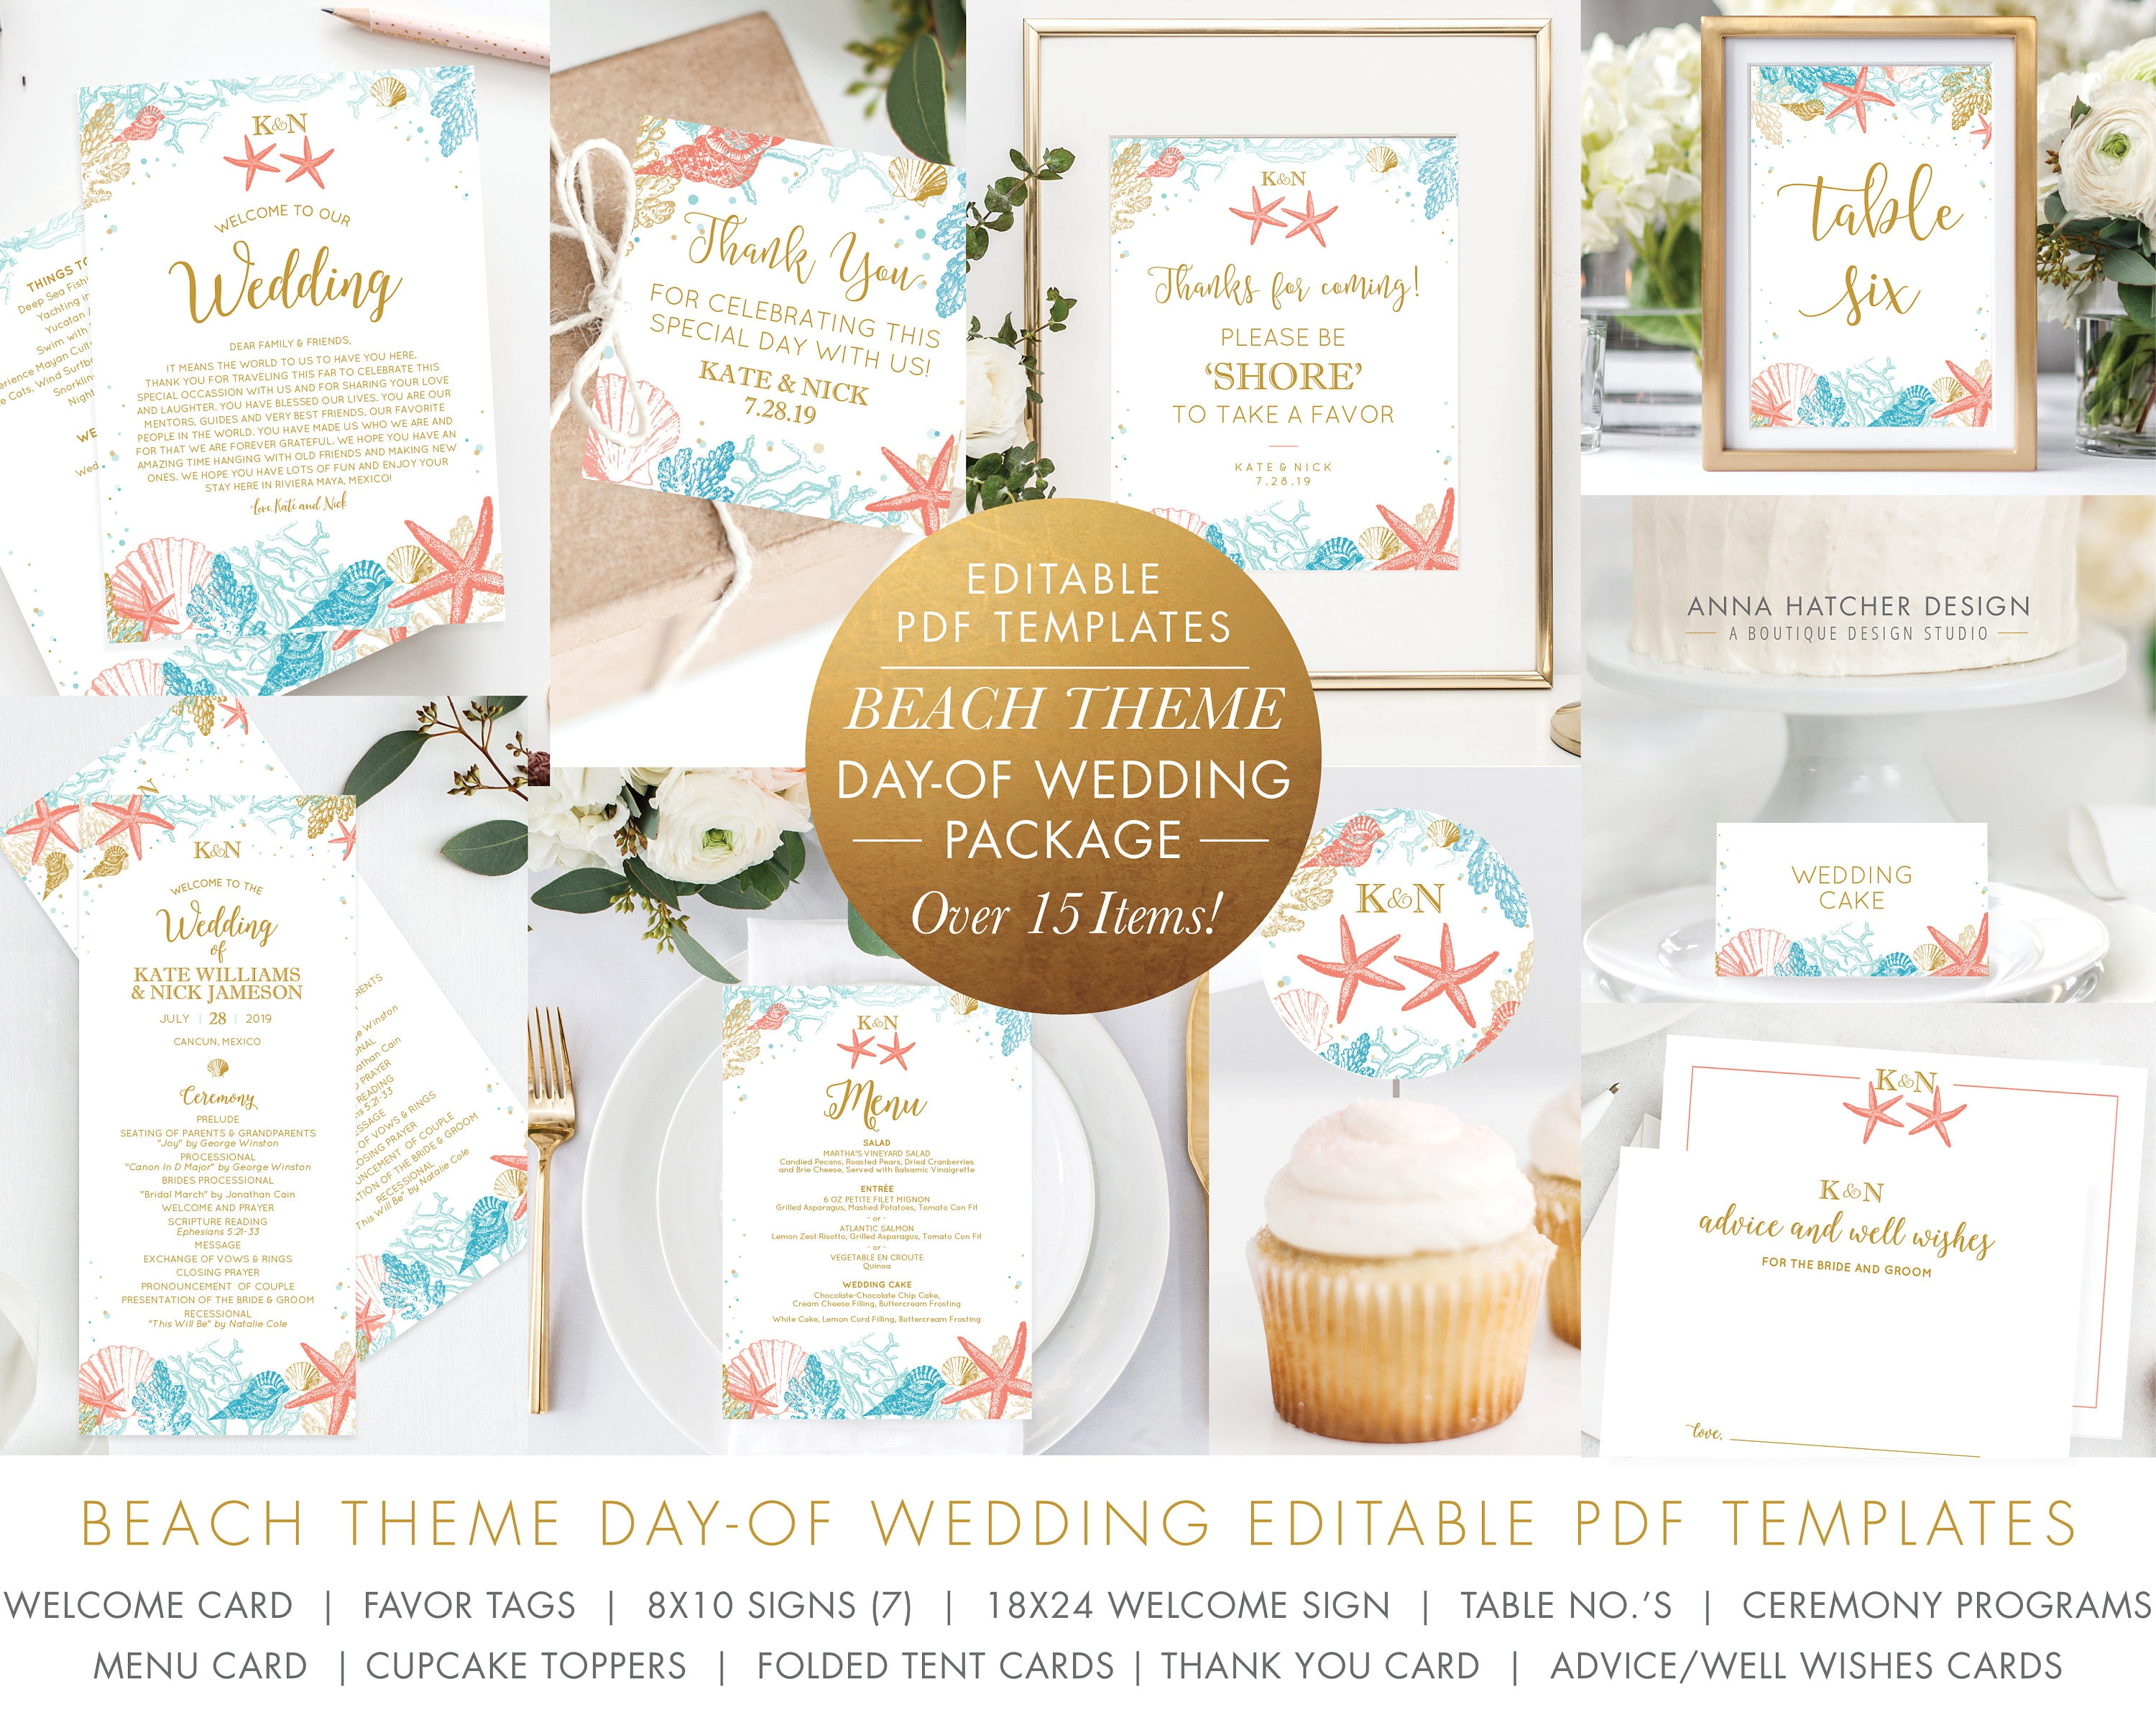 Beach Wedding Editable PDF Templates, Welcome Card, Cupcake, Favor Tag,  Sign, Table Numbers, Program, Menu, Thank You and Advice Card, WED1H